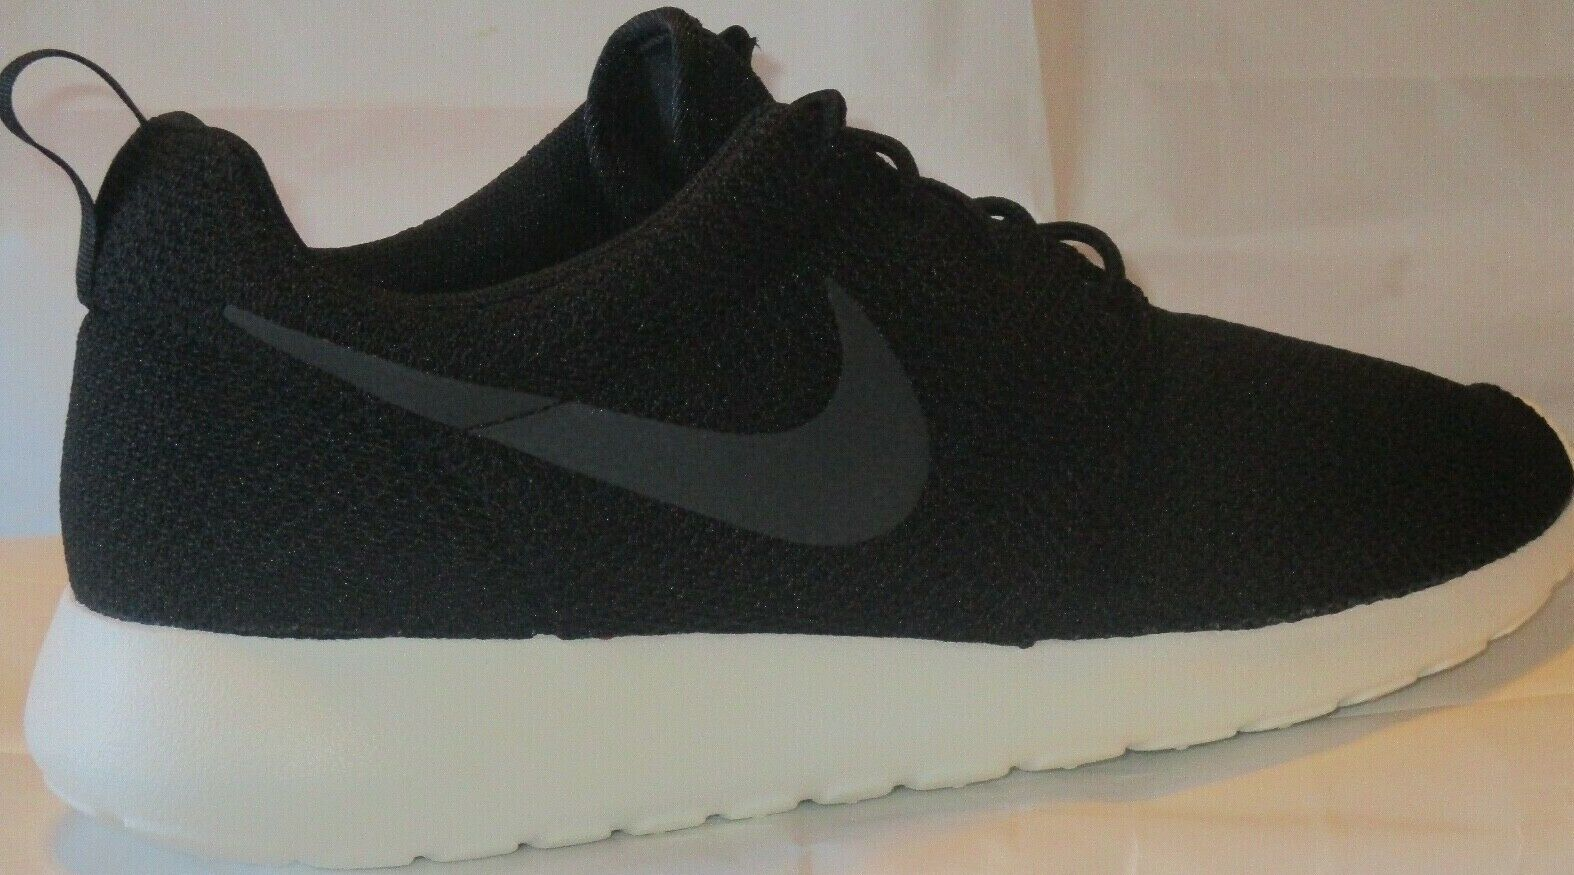 MEN'S NIKE ROSHE ONE BLACK ANTHRACITE-SAIL  SHOES SIZE 9